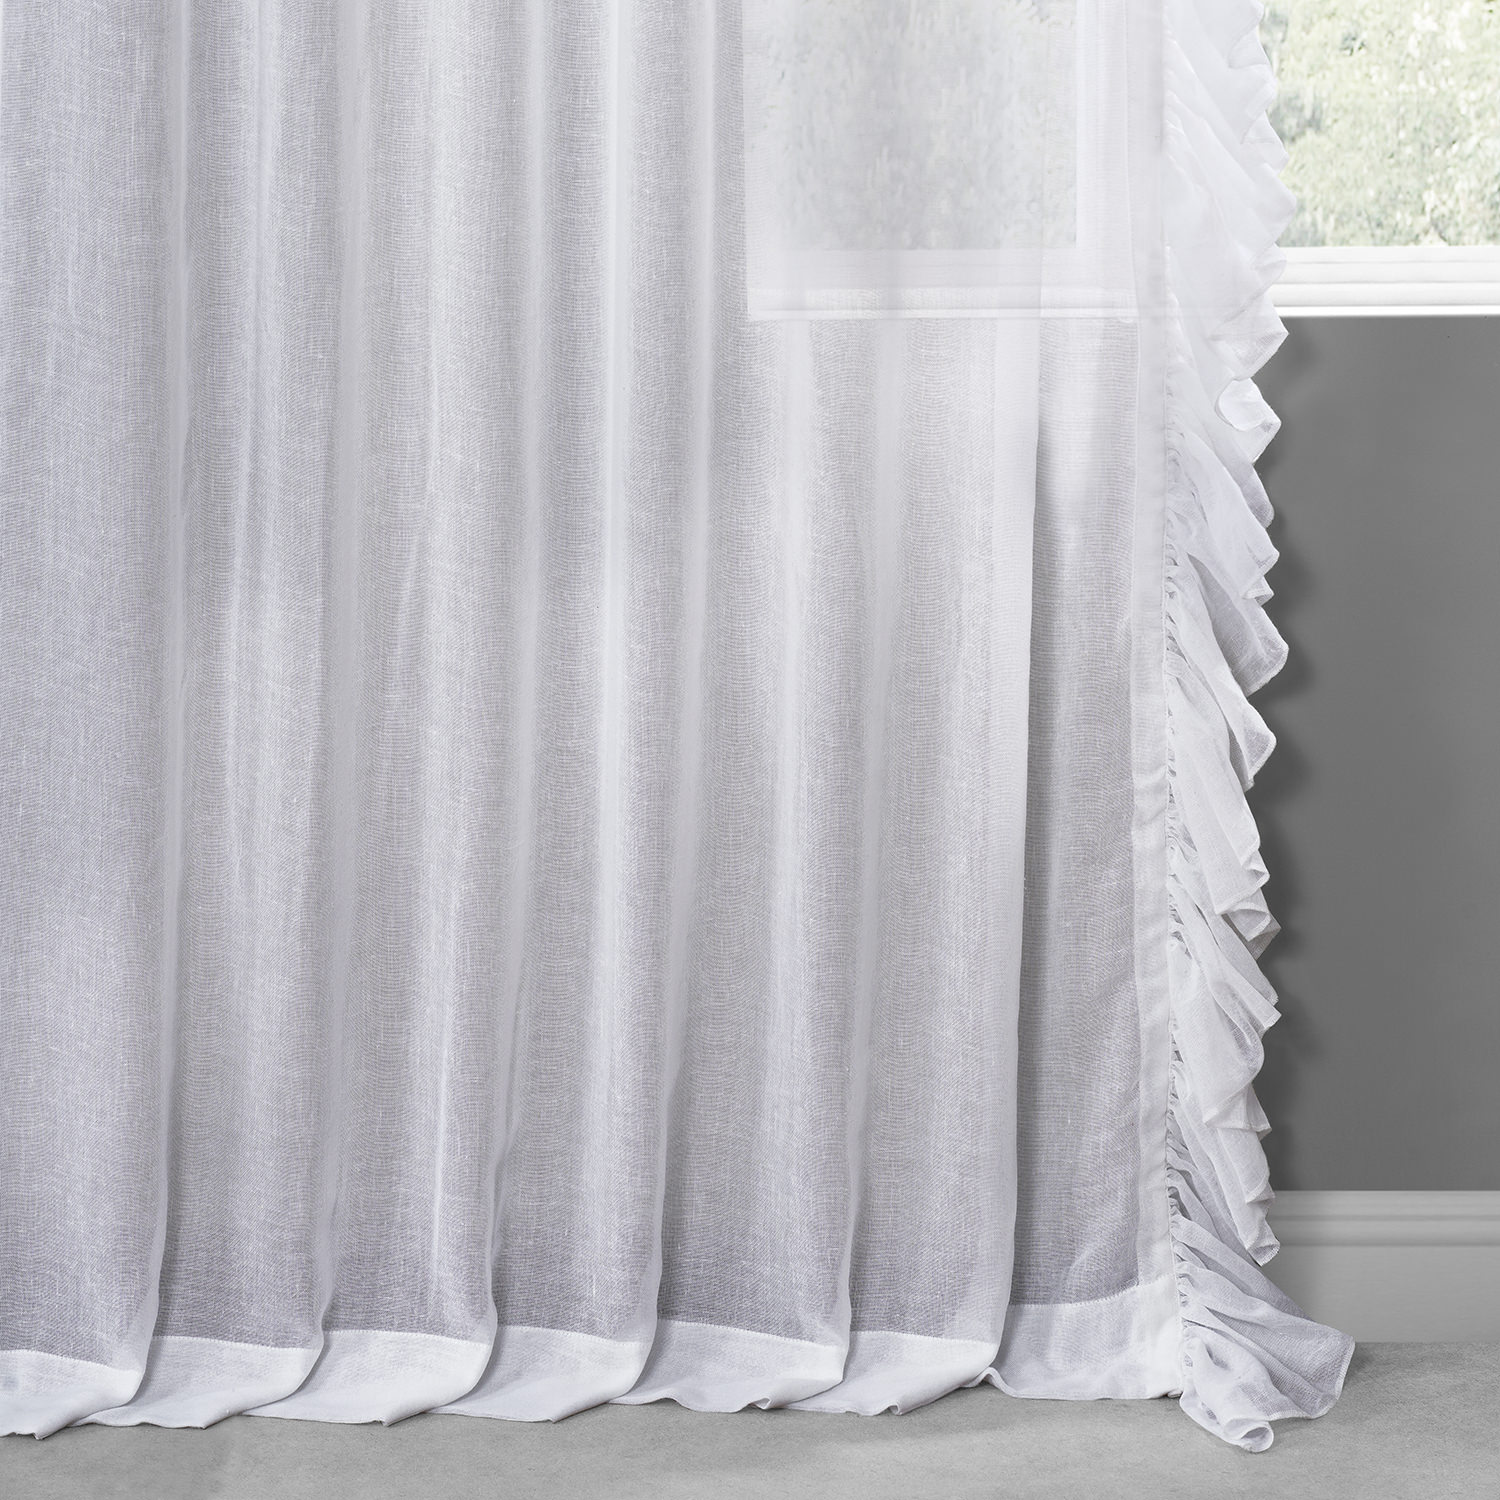 White Orchid Faux Linen Ruffle Sheer Curtain